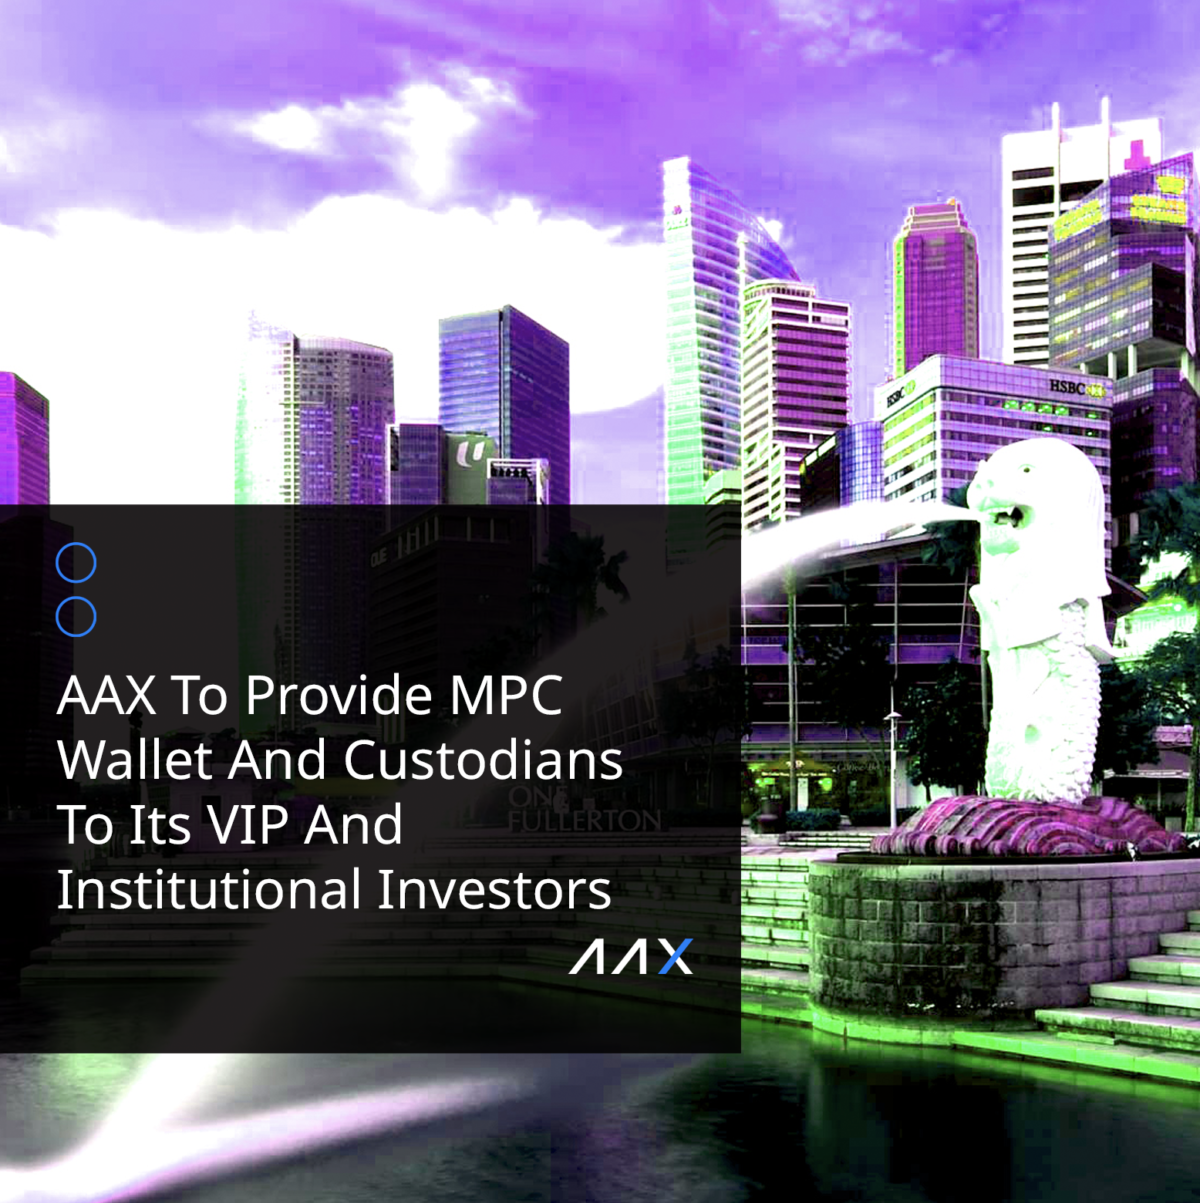 AAX To Provide MPC Wallet And Custodians To Its VIP And Institutional Investors